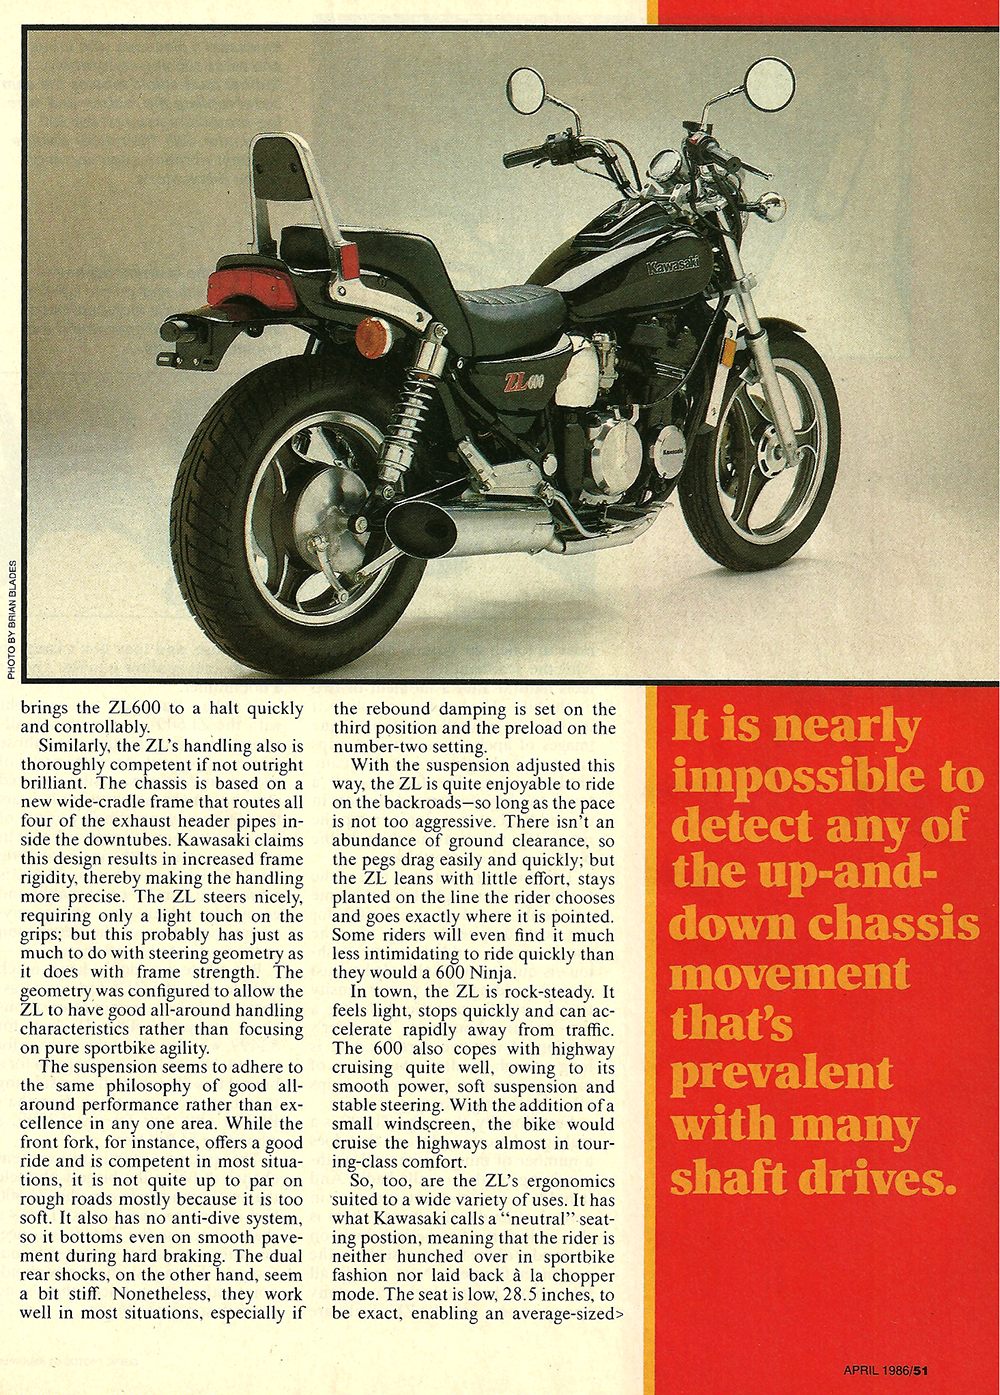 1986 Kawasaki ZL600 Eliminator road test 04.jpg